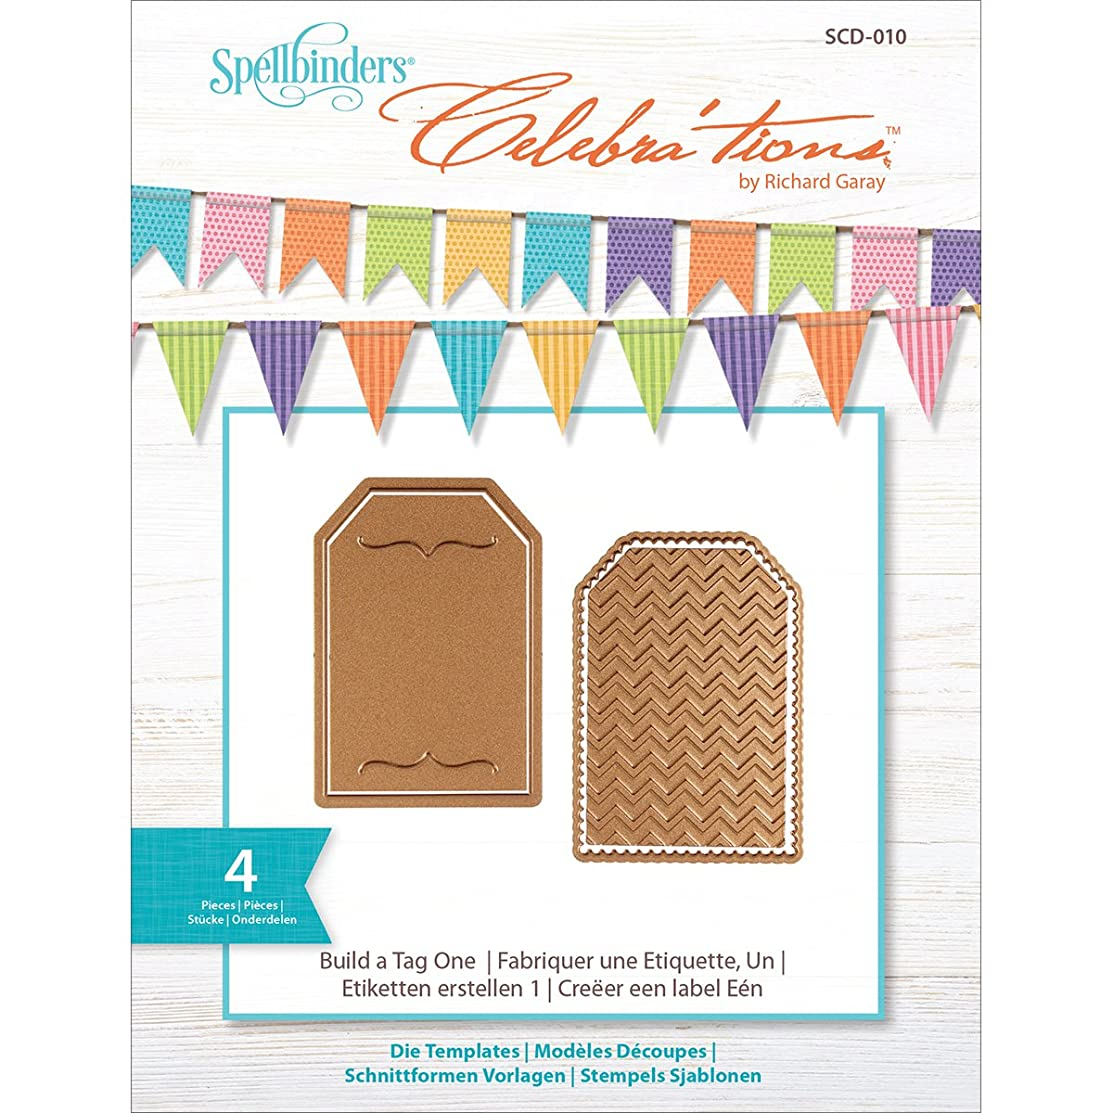 Spellbinders SCD-010 Celebrations Build-a-Tag One Etched/Wafer Thin Dies